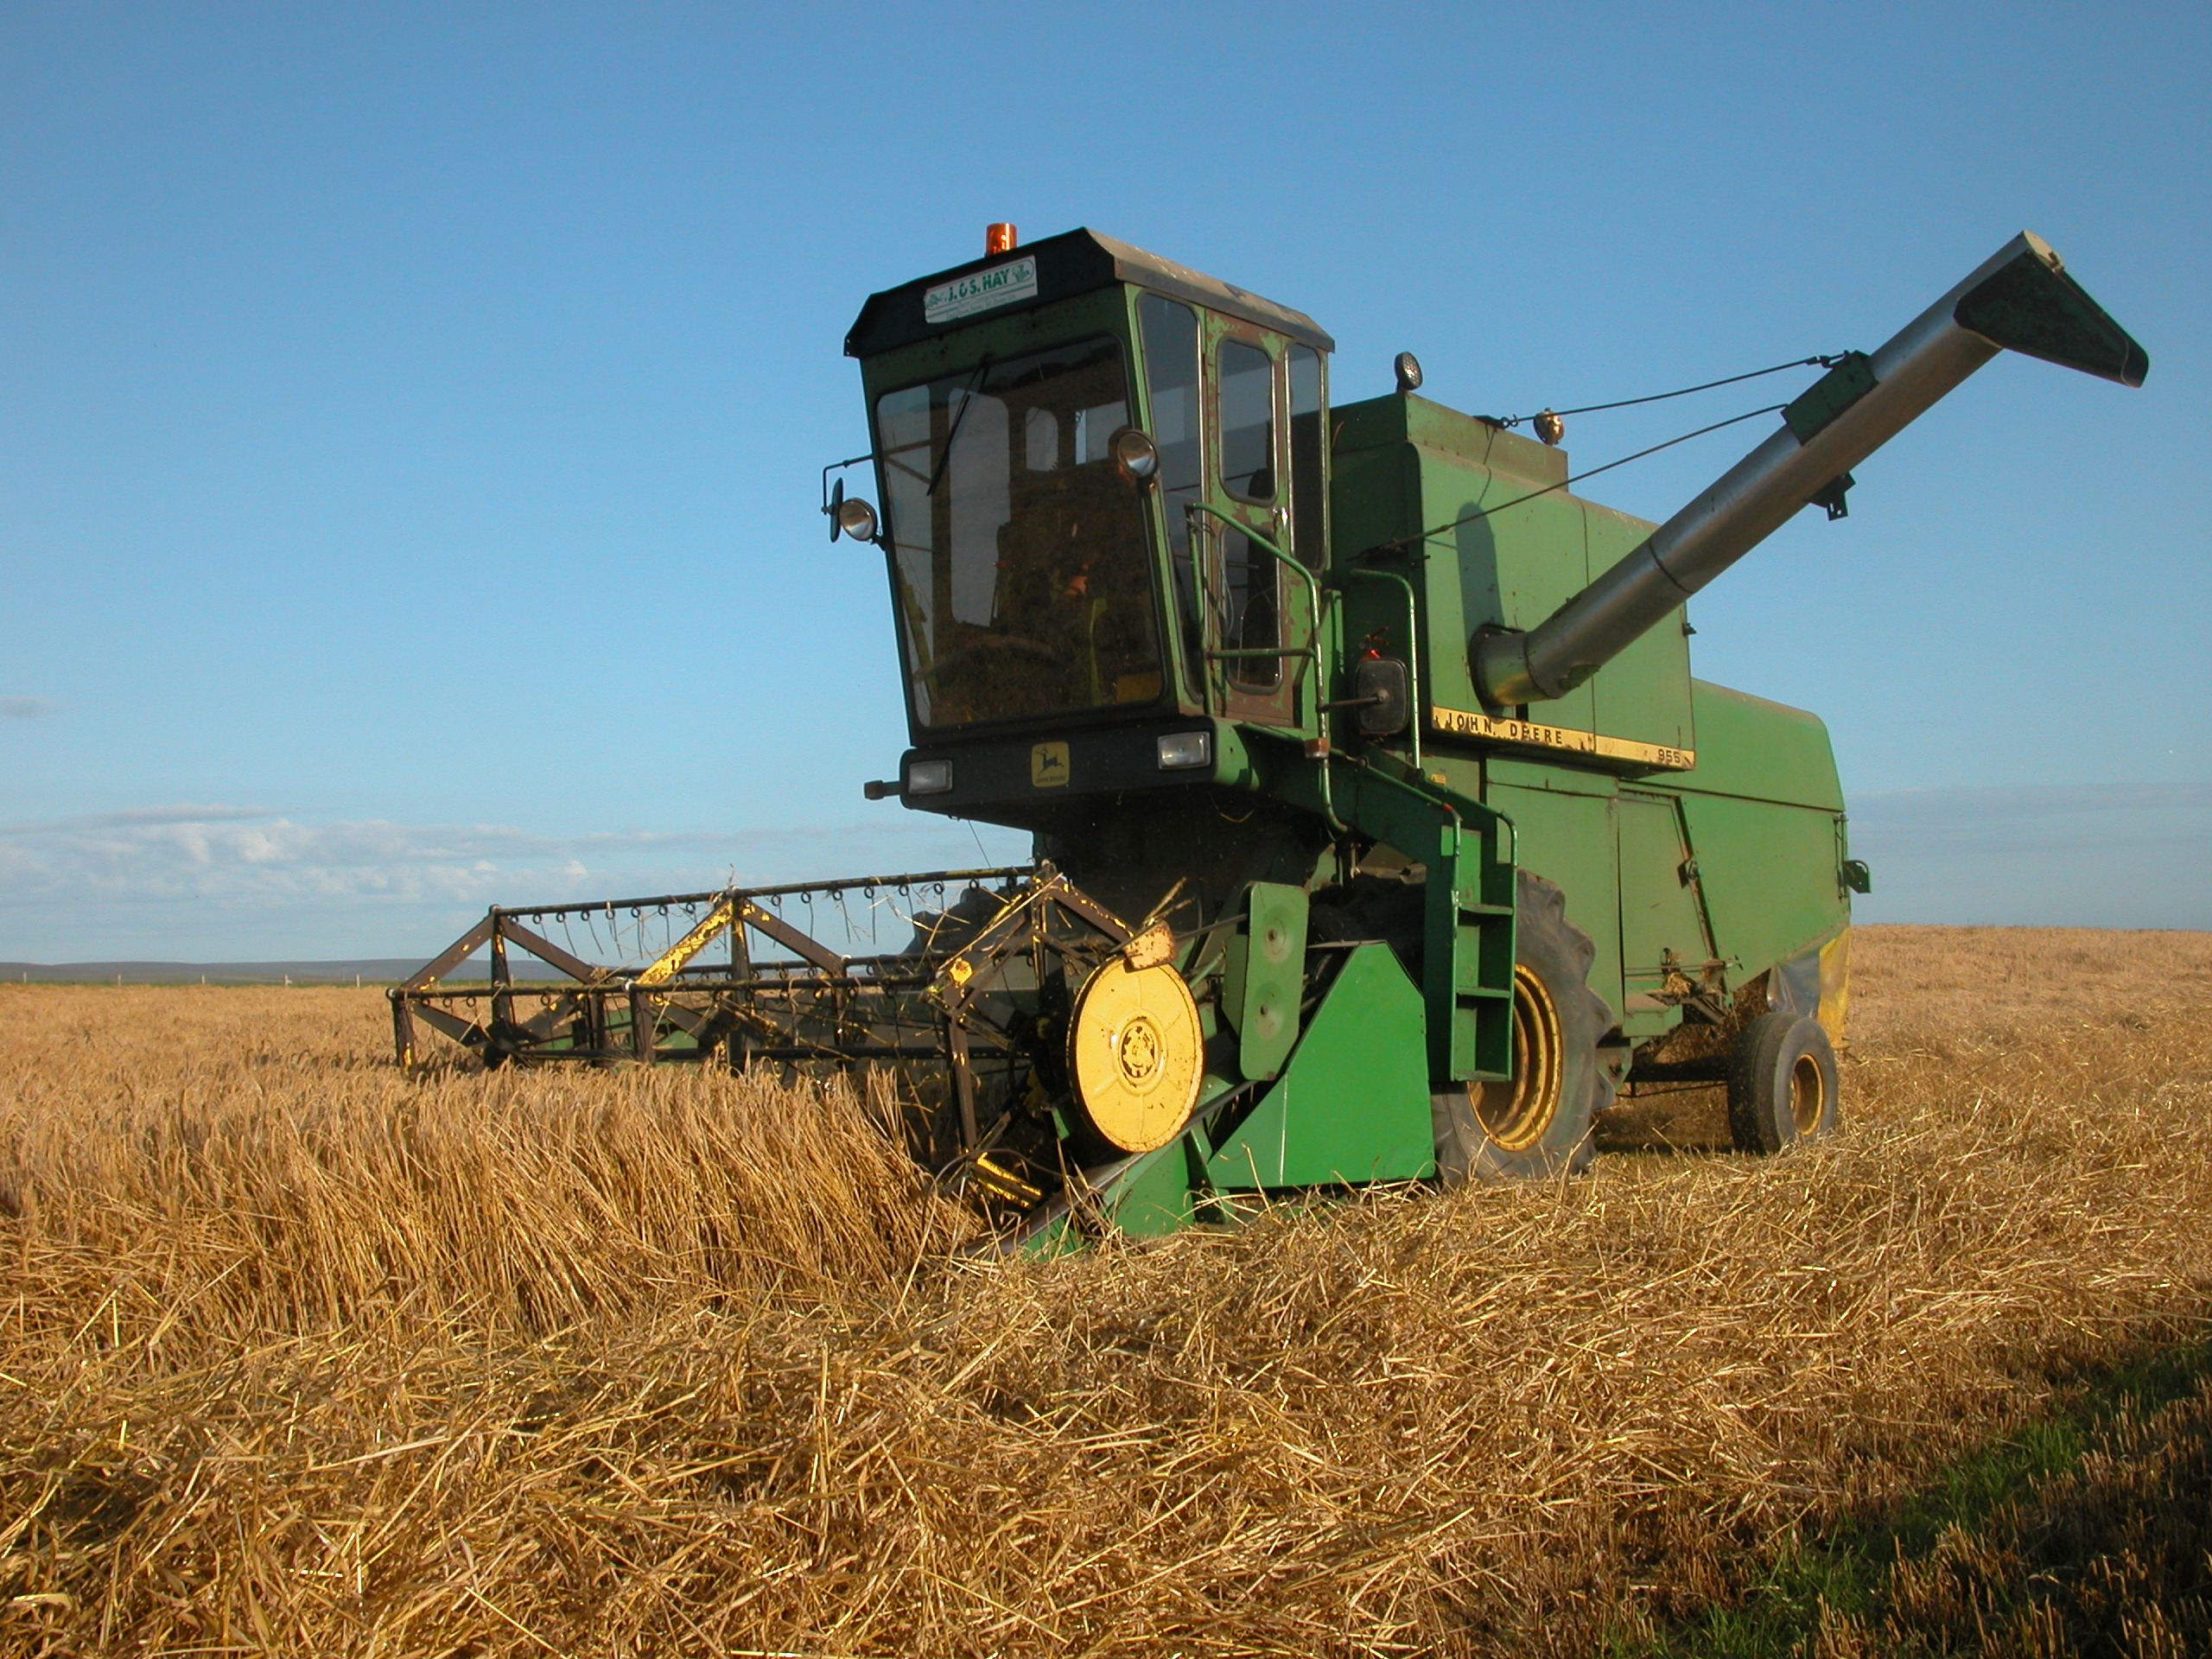 Description John Deere 955 combine harvester, Orkney Islands.jpg